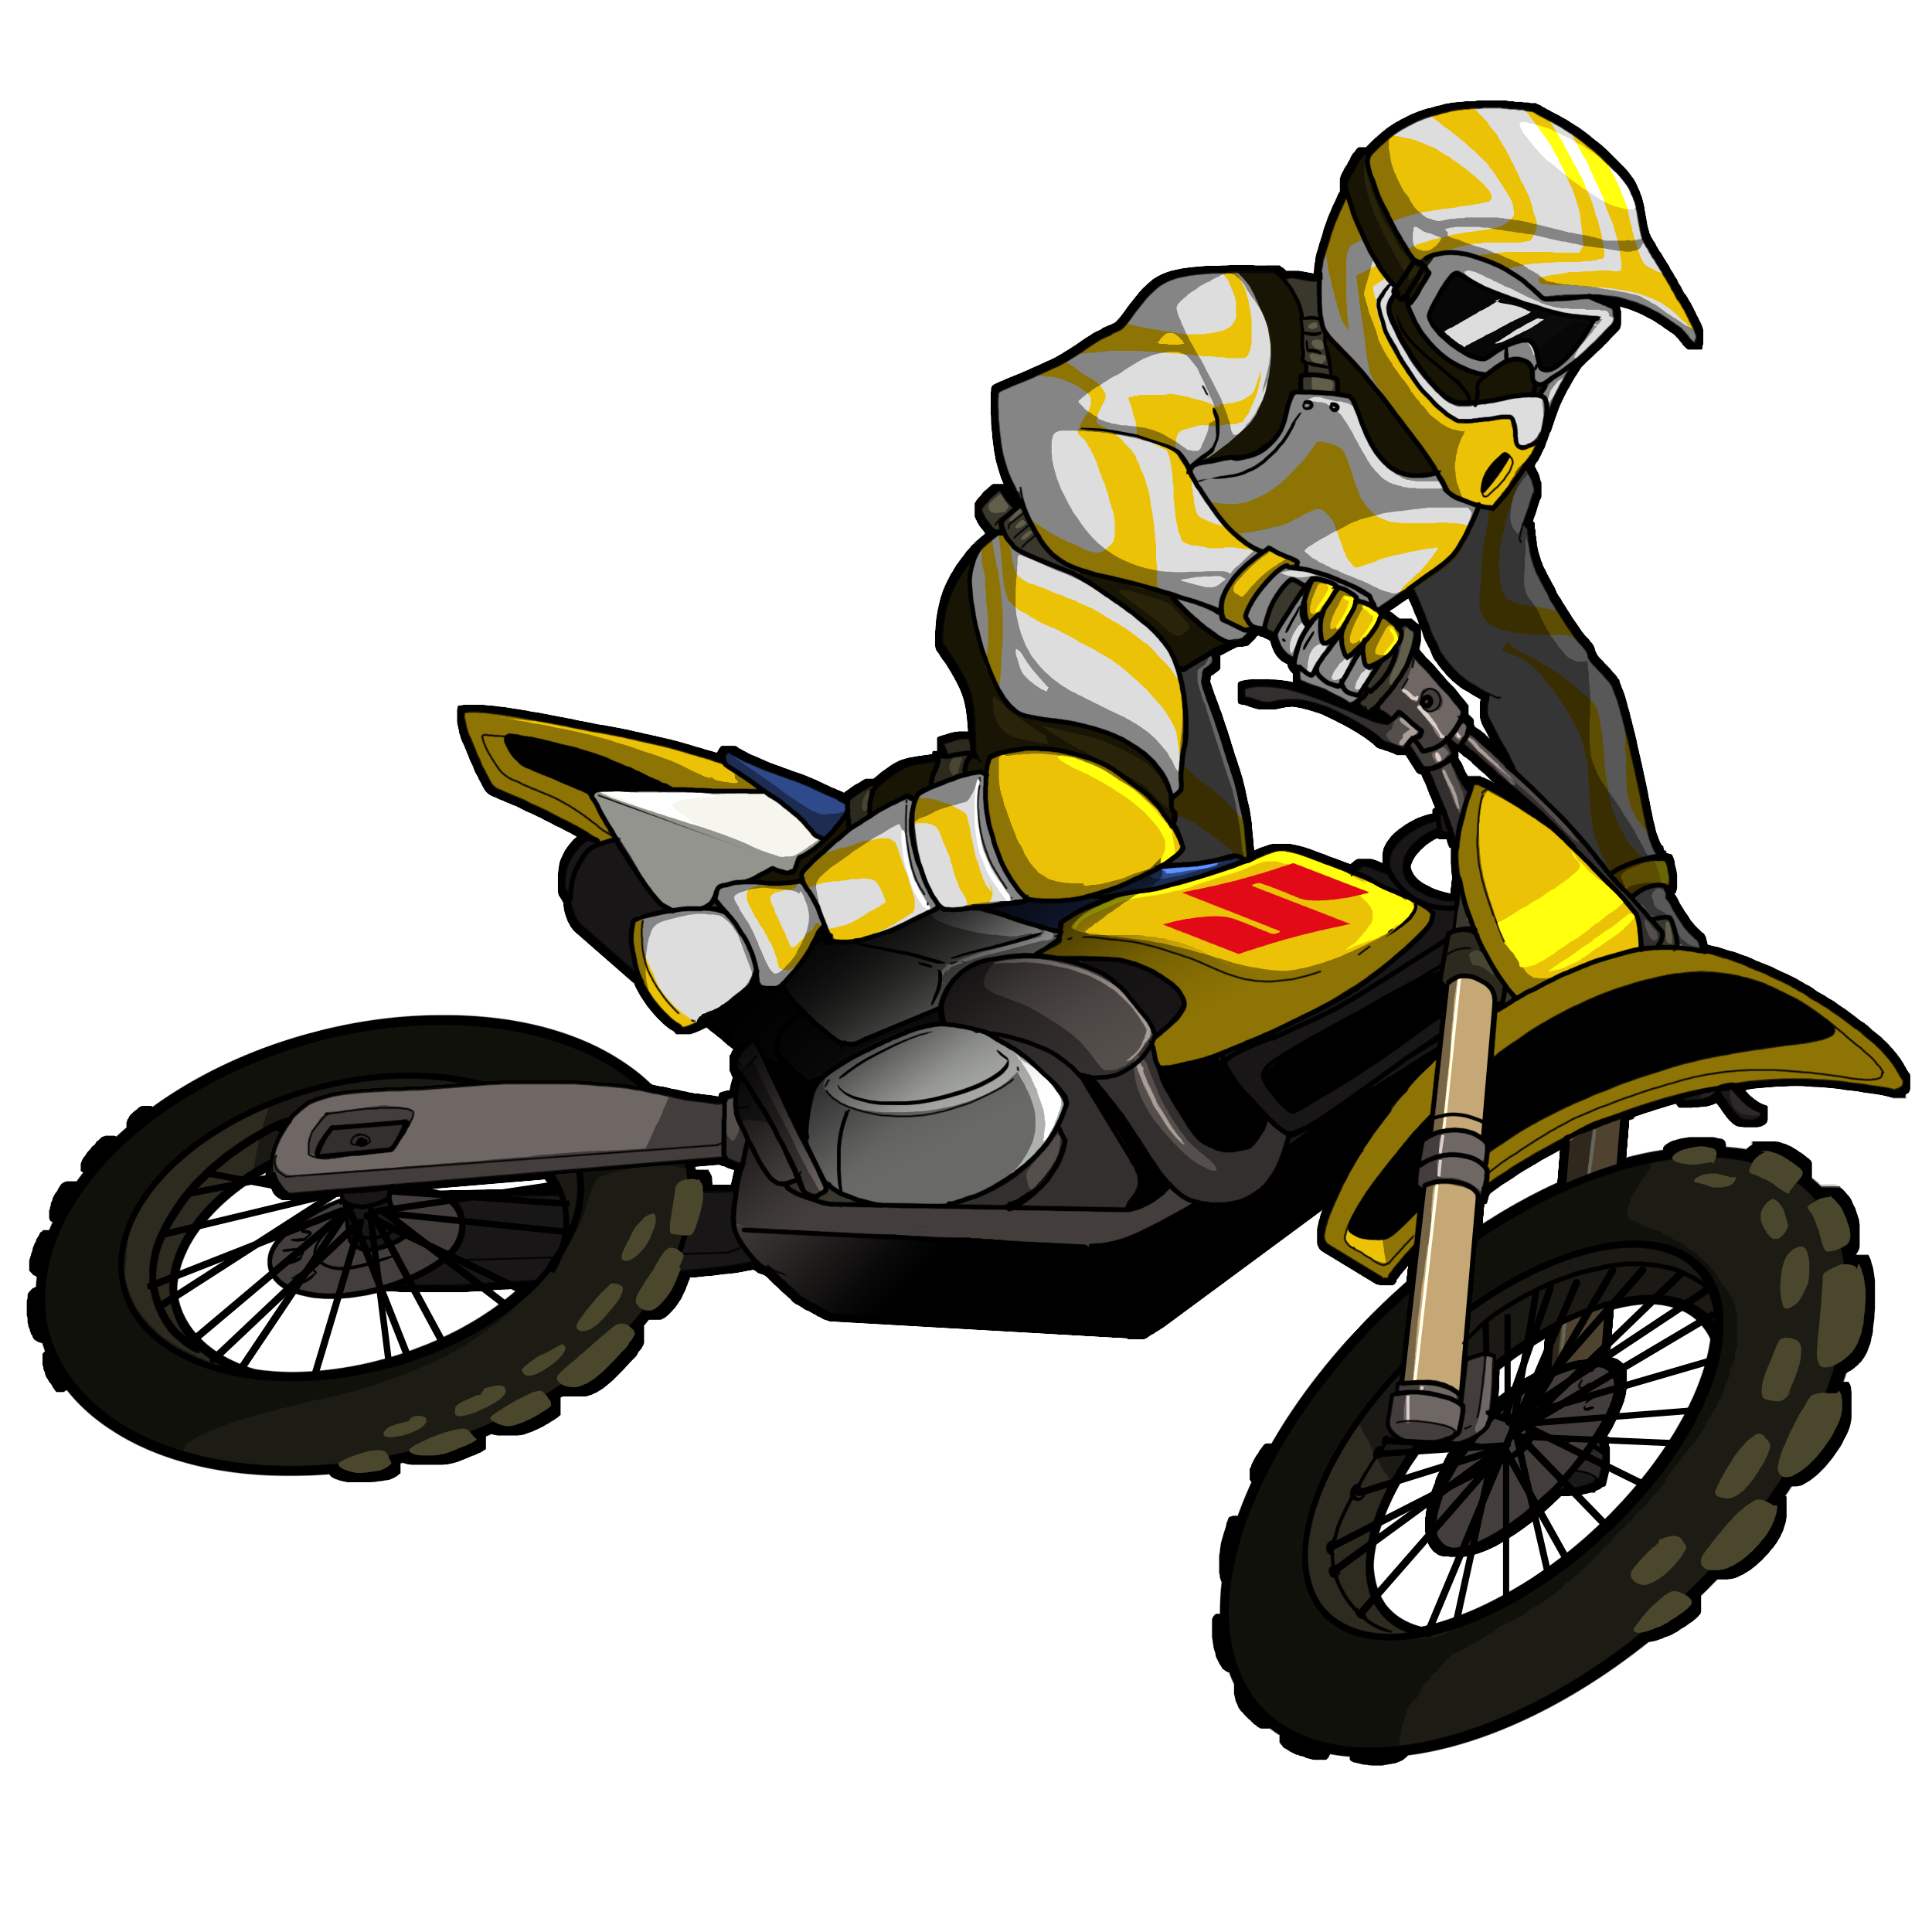 Dirtbike vector. Free motocross icon download